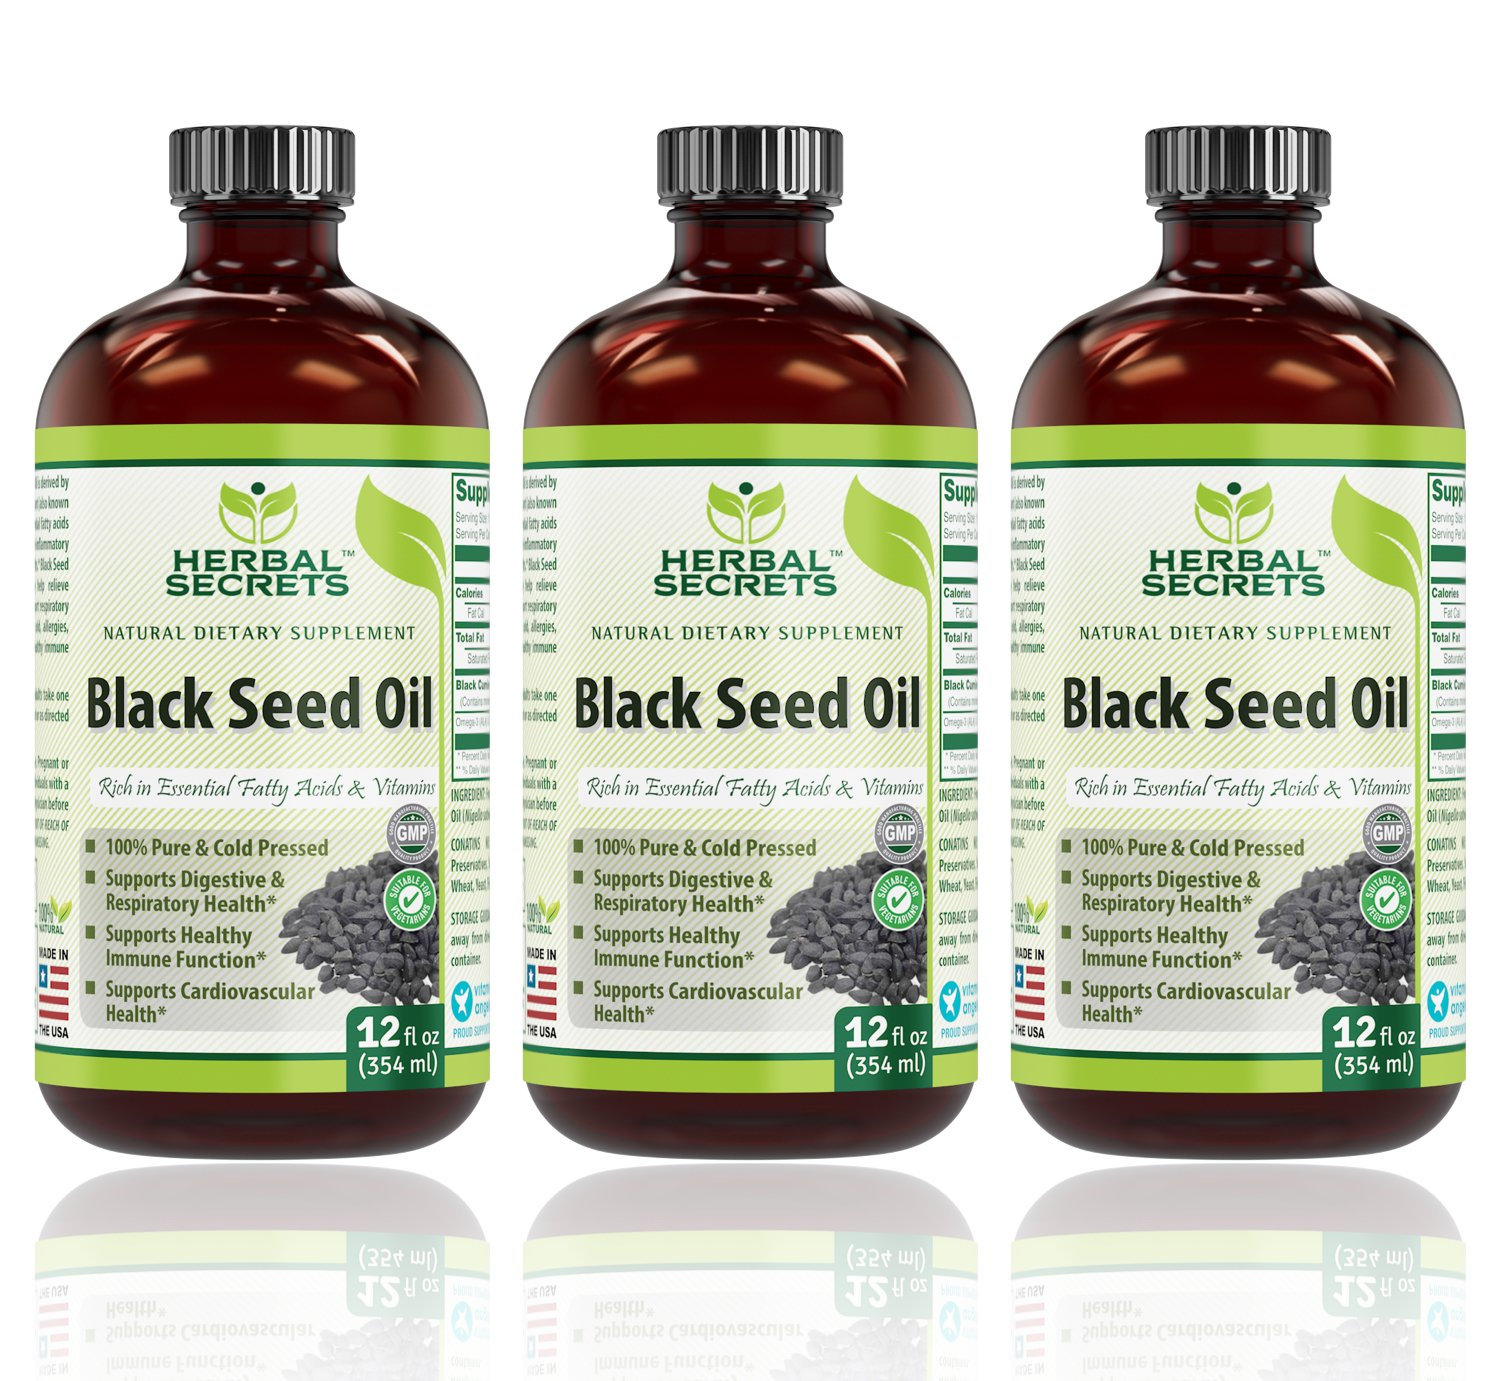 Herbal Secrets Black Seed Oil Natural Dietary Supplement - Cold Pressed Black Cumin Seed Oil from 100% Genuine Nigella Sativa - 16 oz Bottle (3 Pack - 12 Ounce Bottles)